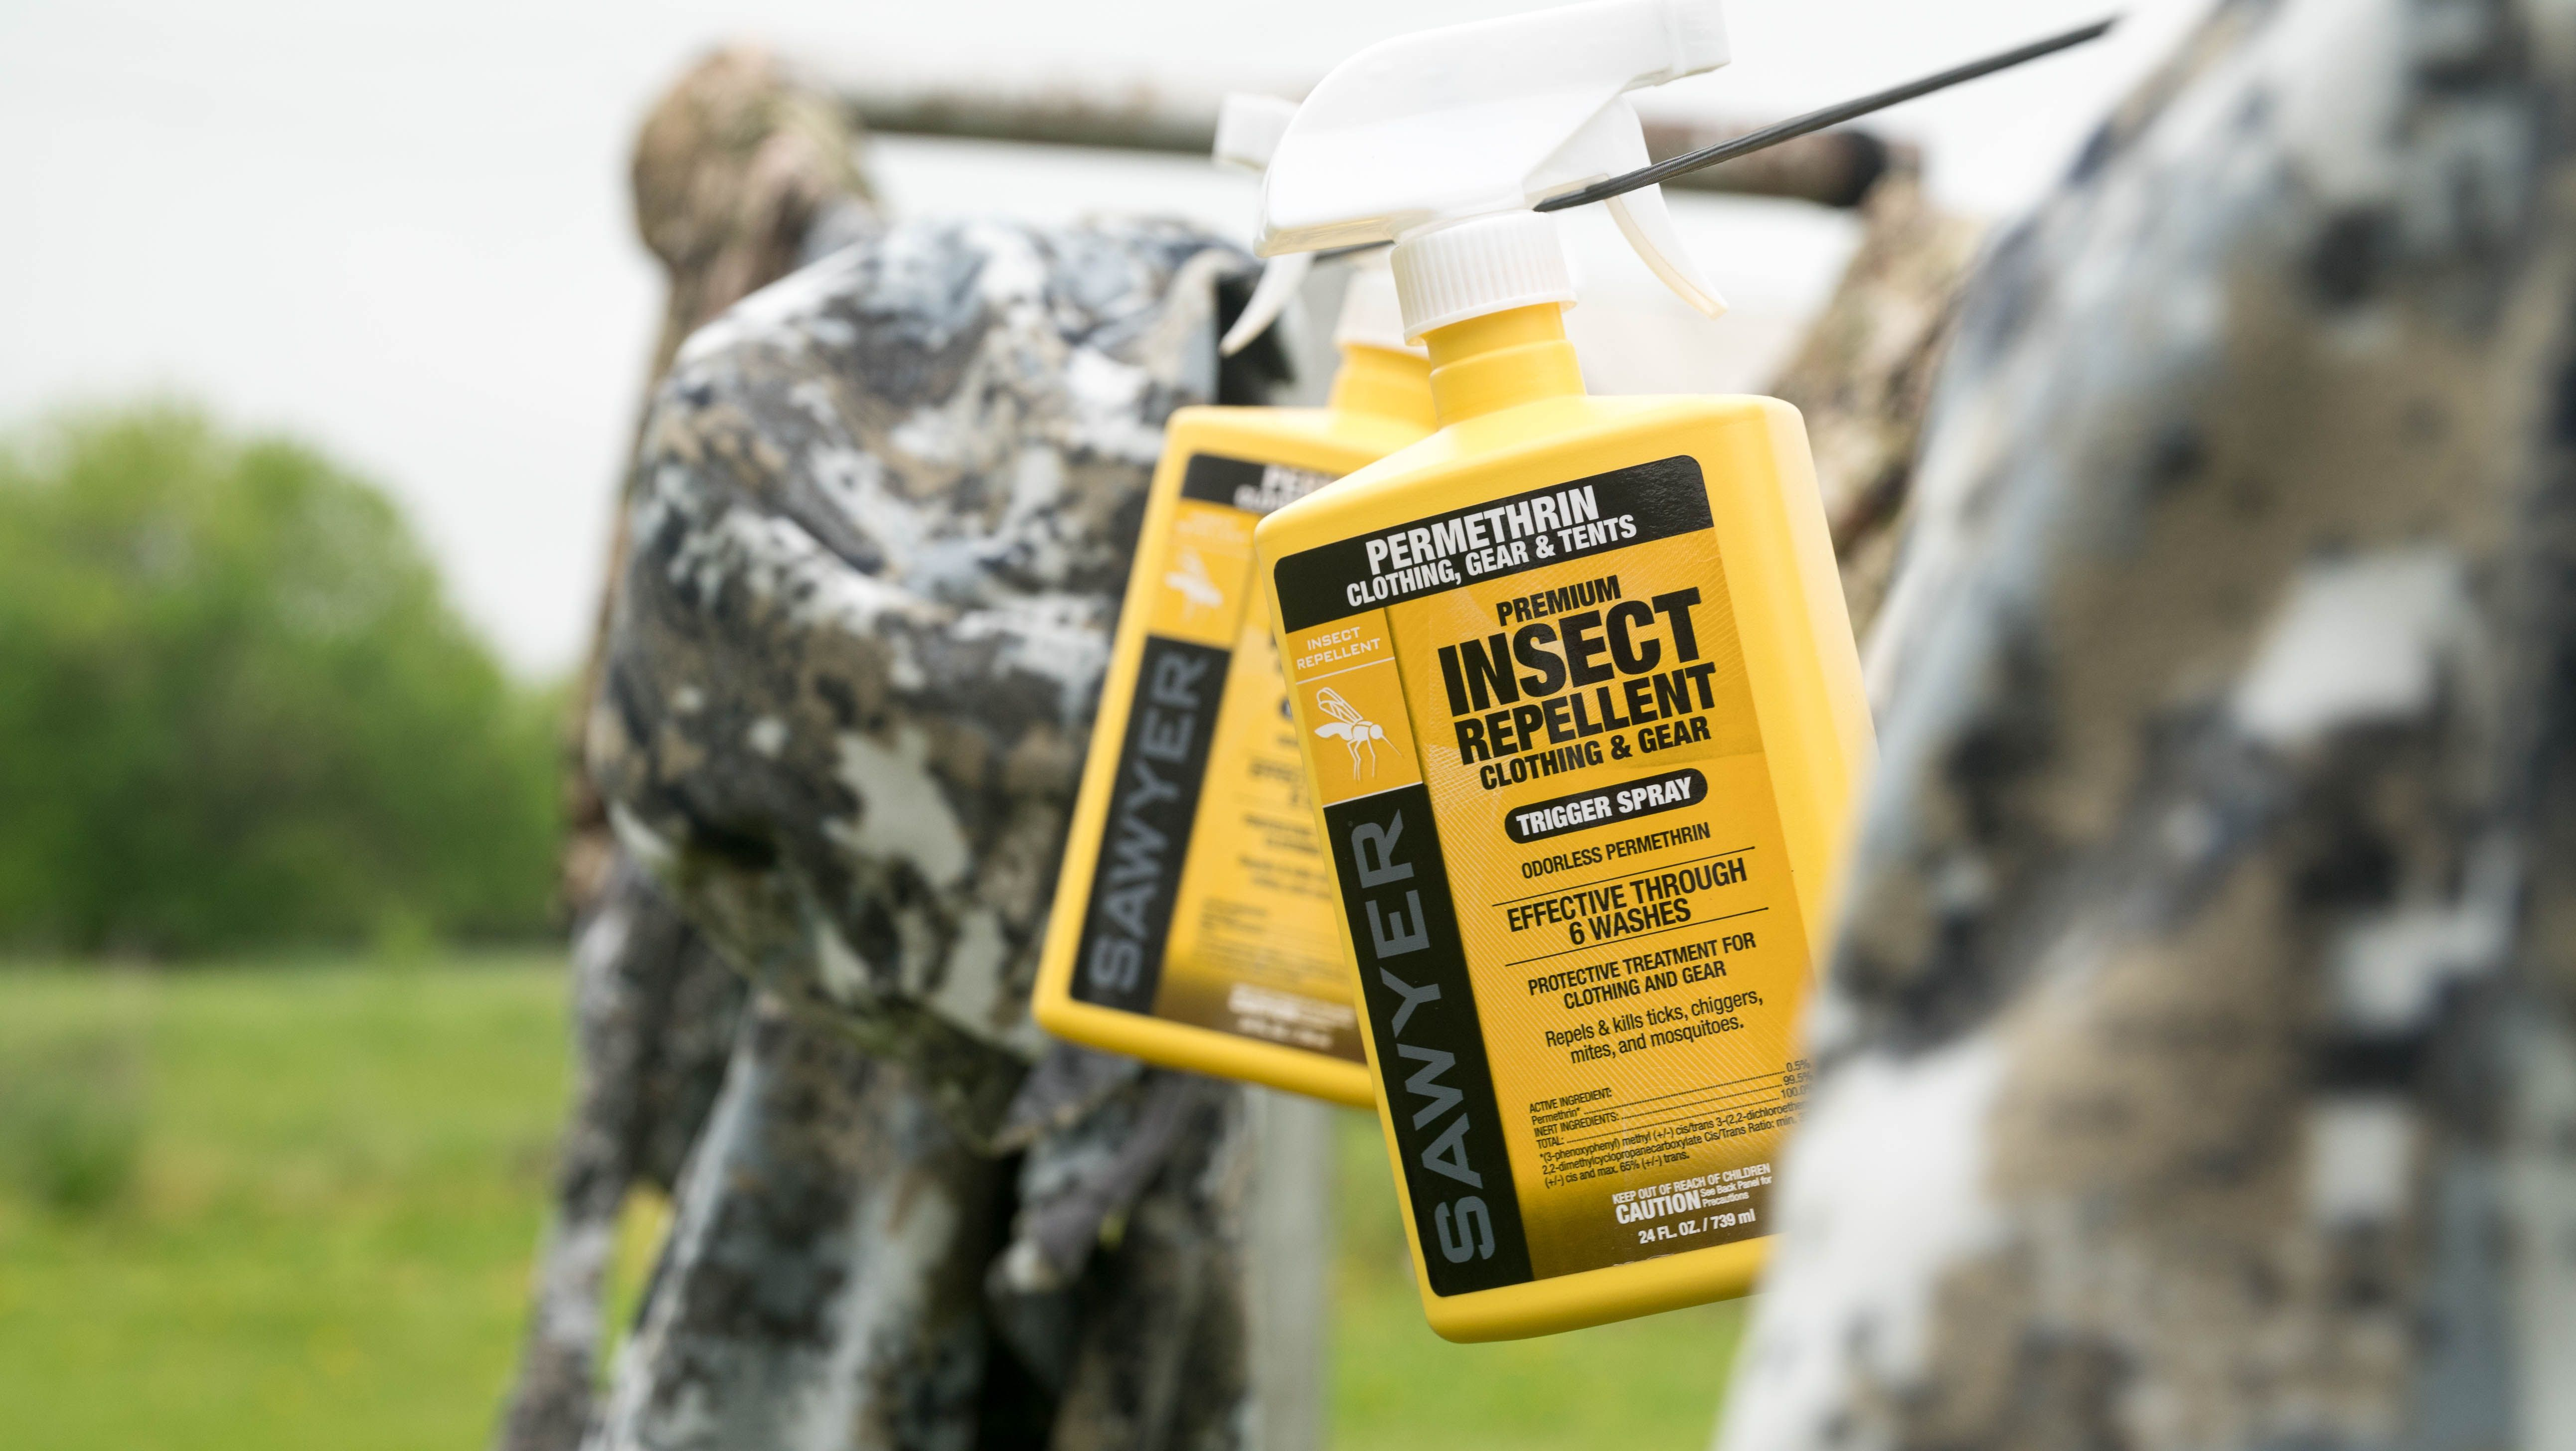 Permethrin Insect Repellent For Clothing Gear And Tents Sawyer Products Sawyer Products Insect Repellent Insect Repellent Spray Repellent